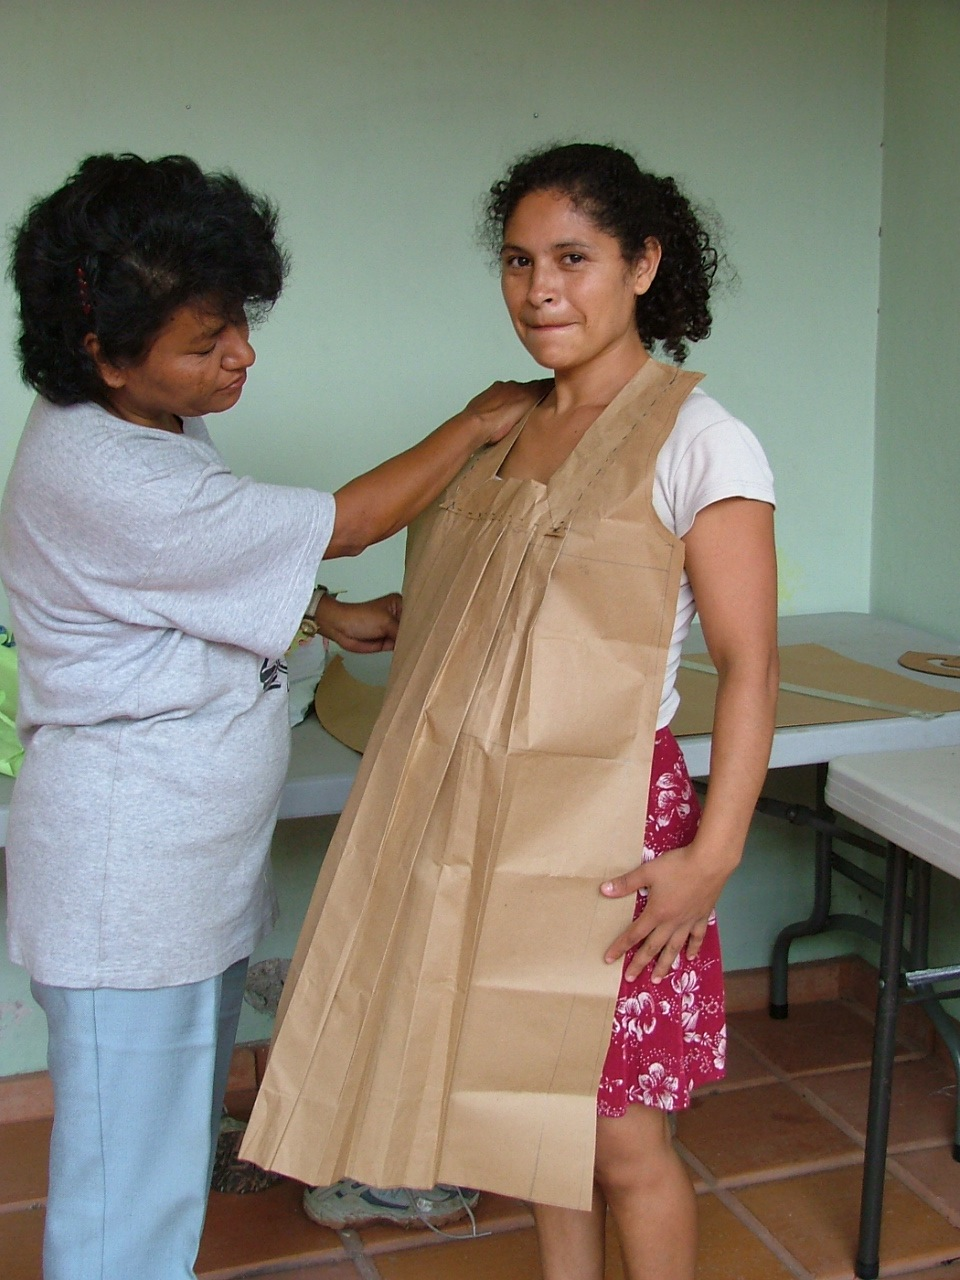 Learning to make patterns in her level one class. 2005